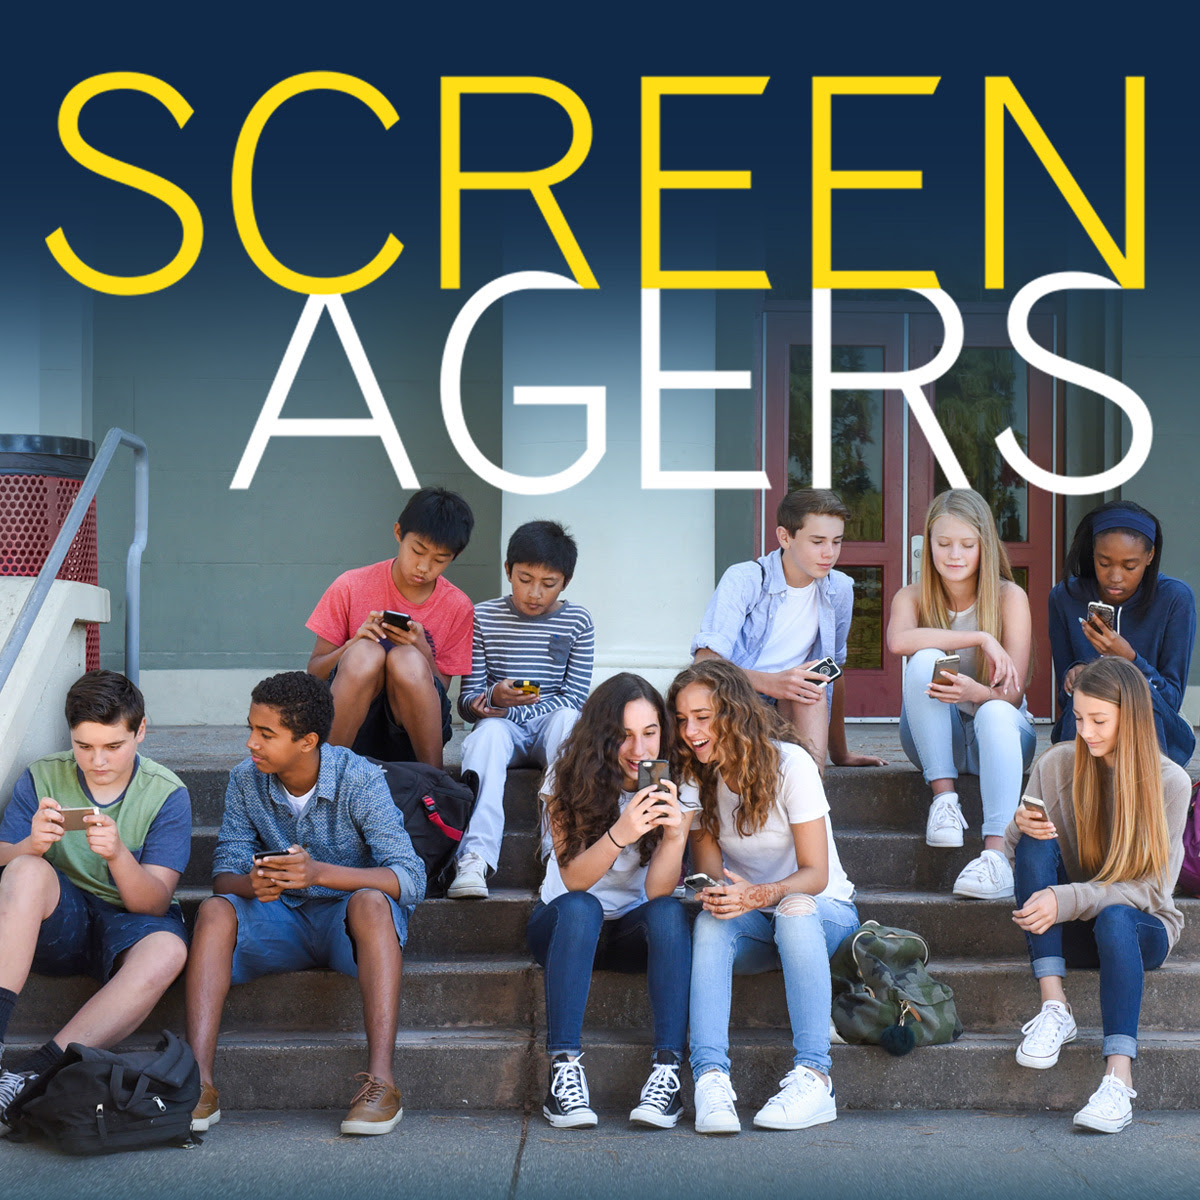 Screenagers Film Presented By St. Jerome Parish School